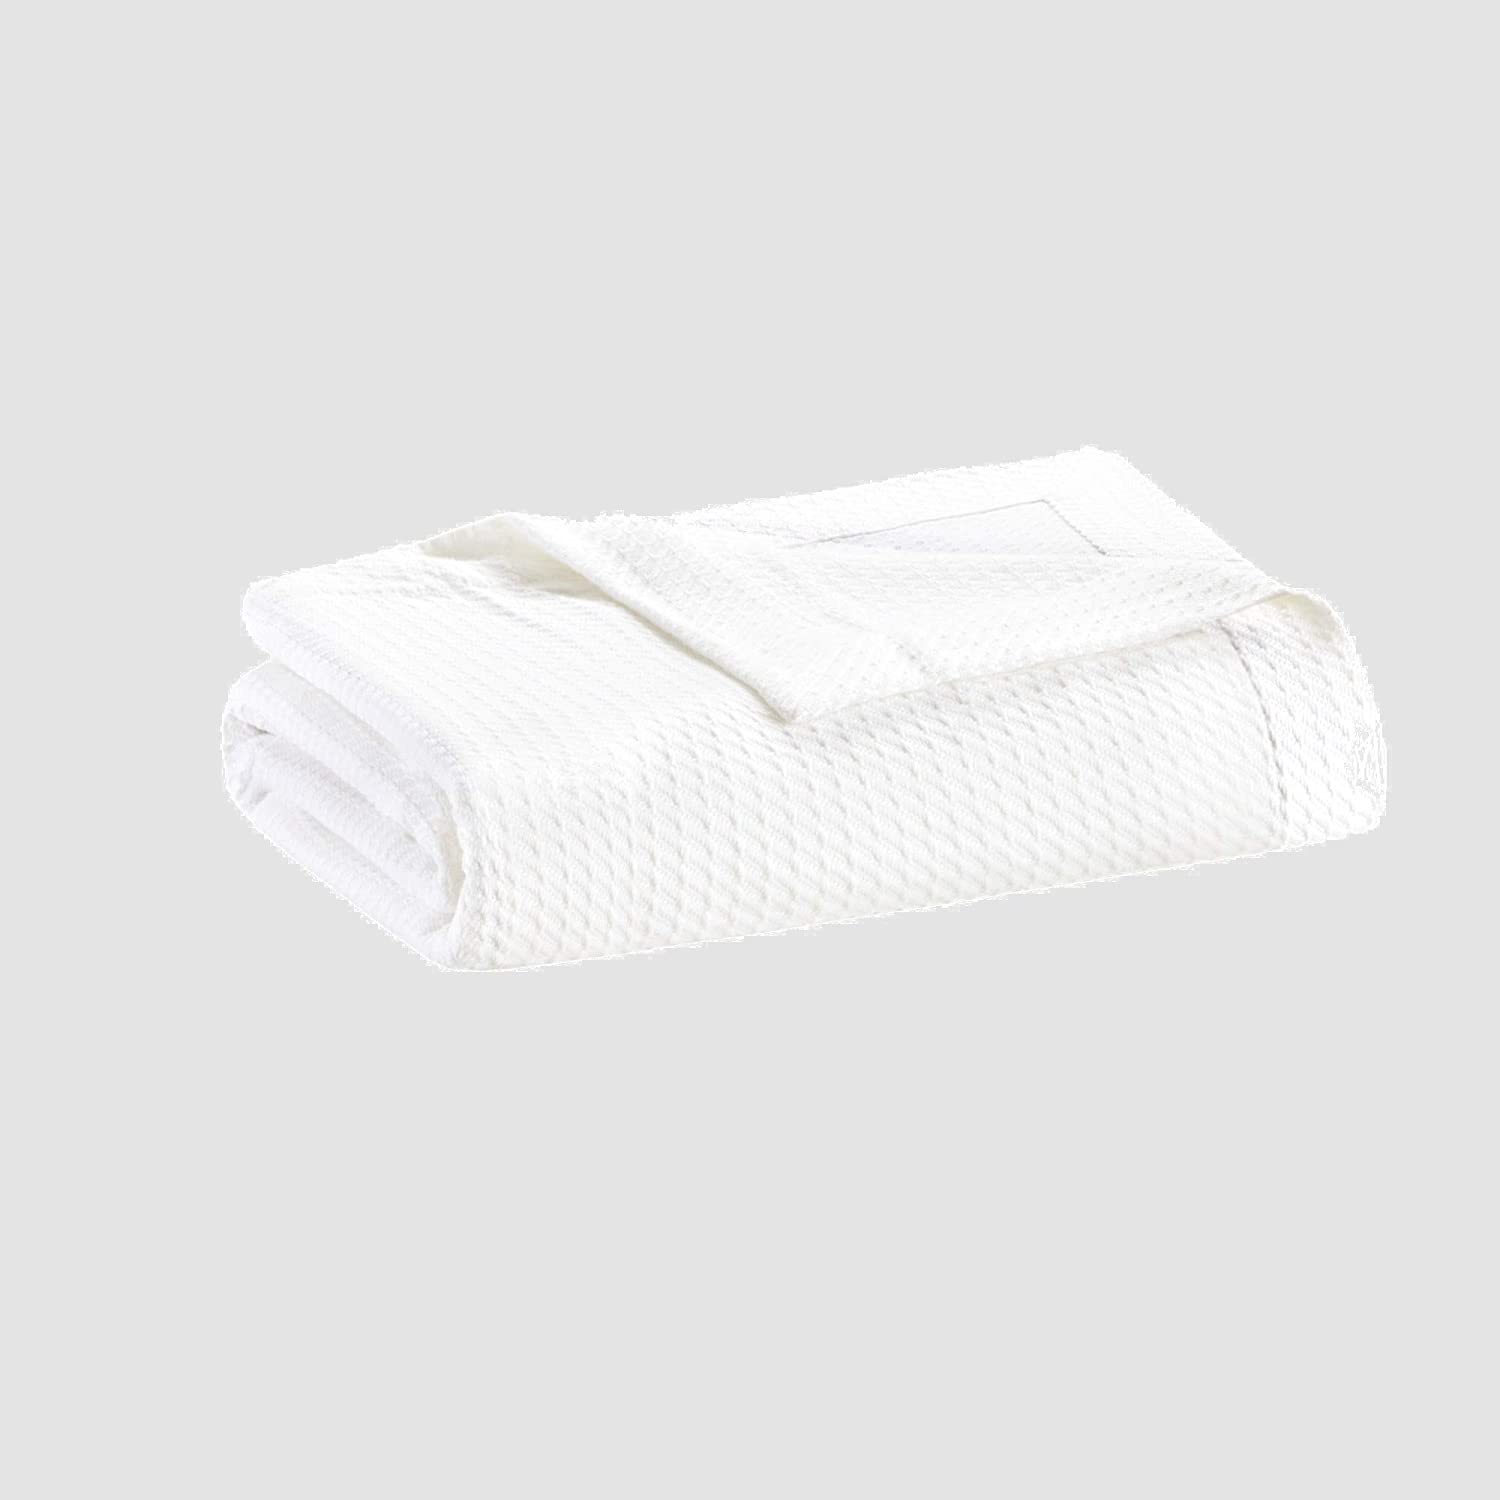 Madison Park Egyptian Cotton Luxury Blanket White 108x90 King Size Knit Premium Soft Cozy 100% Cerified Egyptian Cotton For Bed, Couch or Sofa